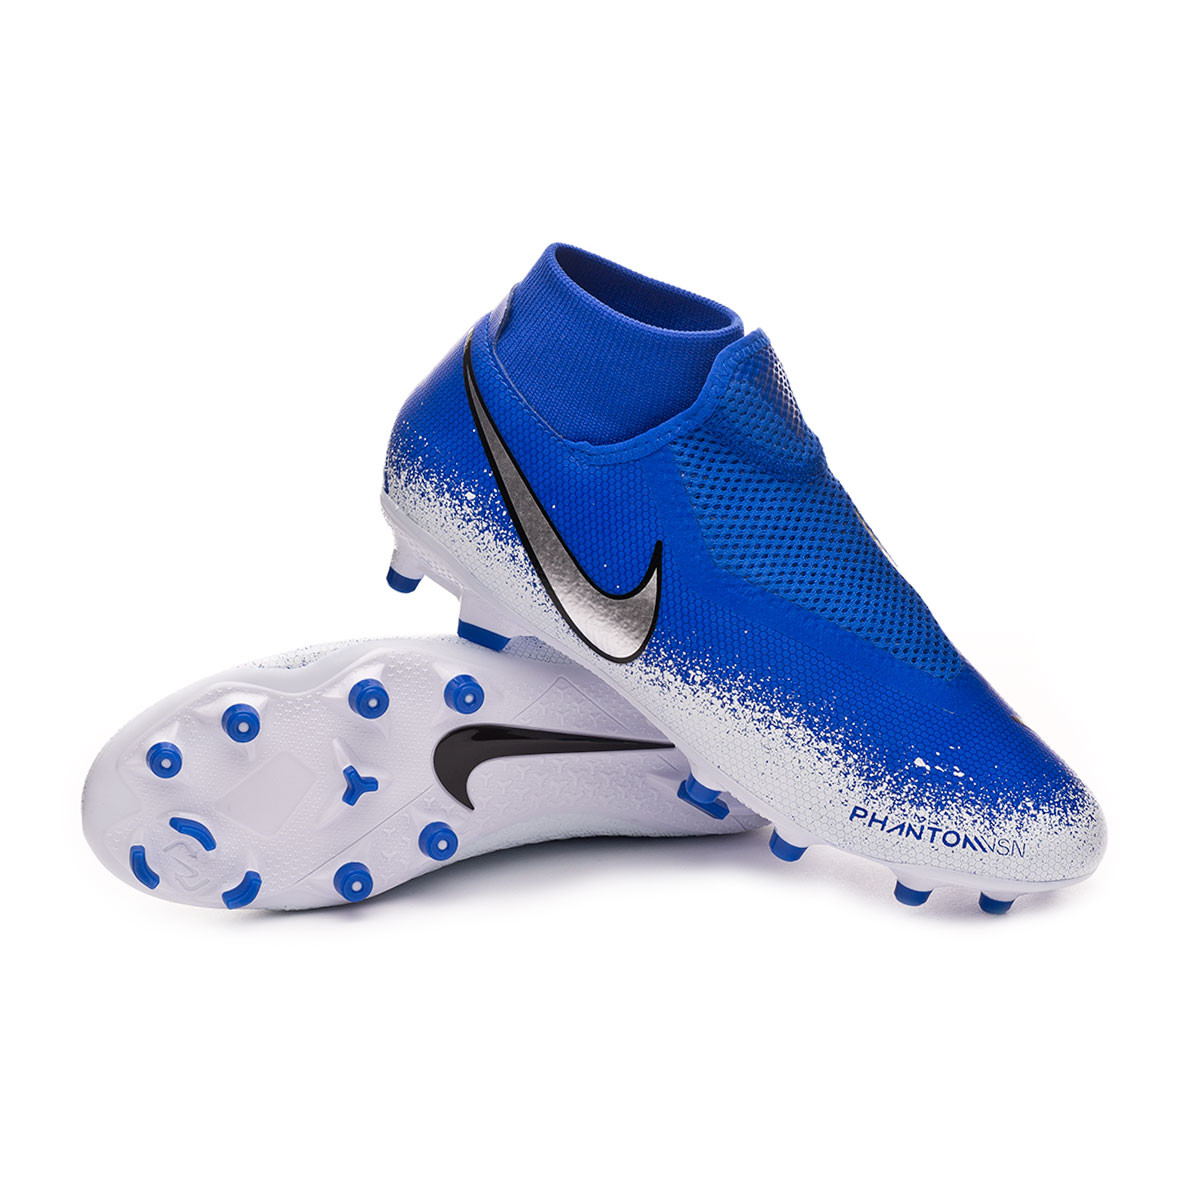 buy popular 18d71 40f15 Football Boots Nike Phantom Vision Academy DF FG MG Racer blue-Chrome-White  - Football store Fútbol Emotion